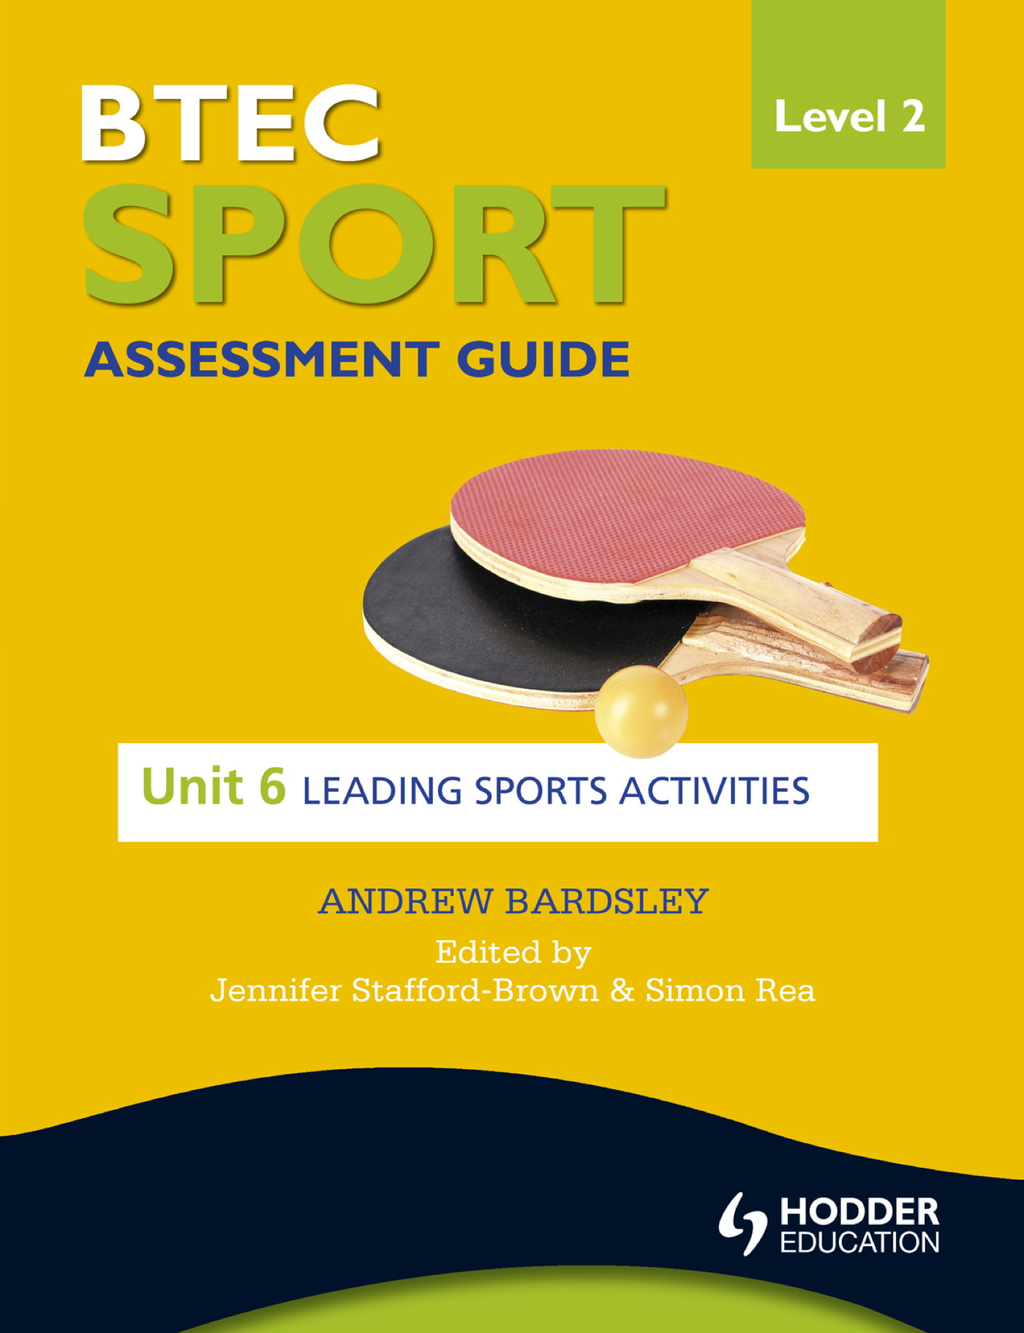 BTEC Sport Level 2 Assessment Guide: Unit 6 Leading Sports Activities